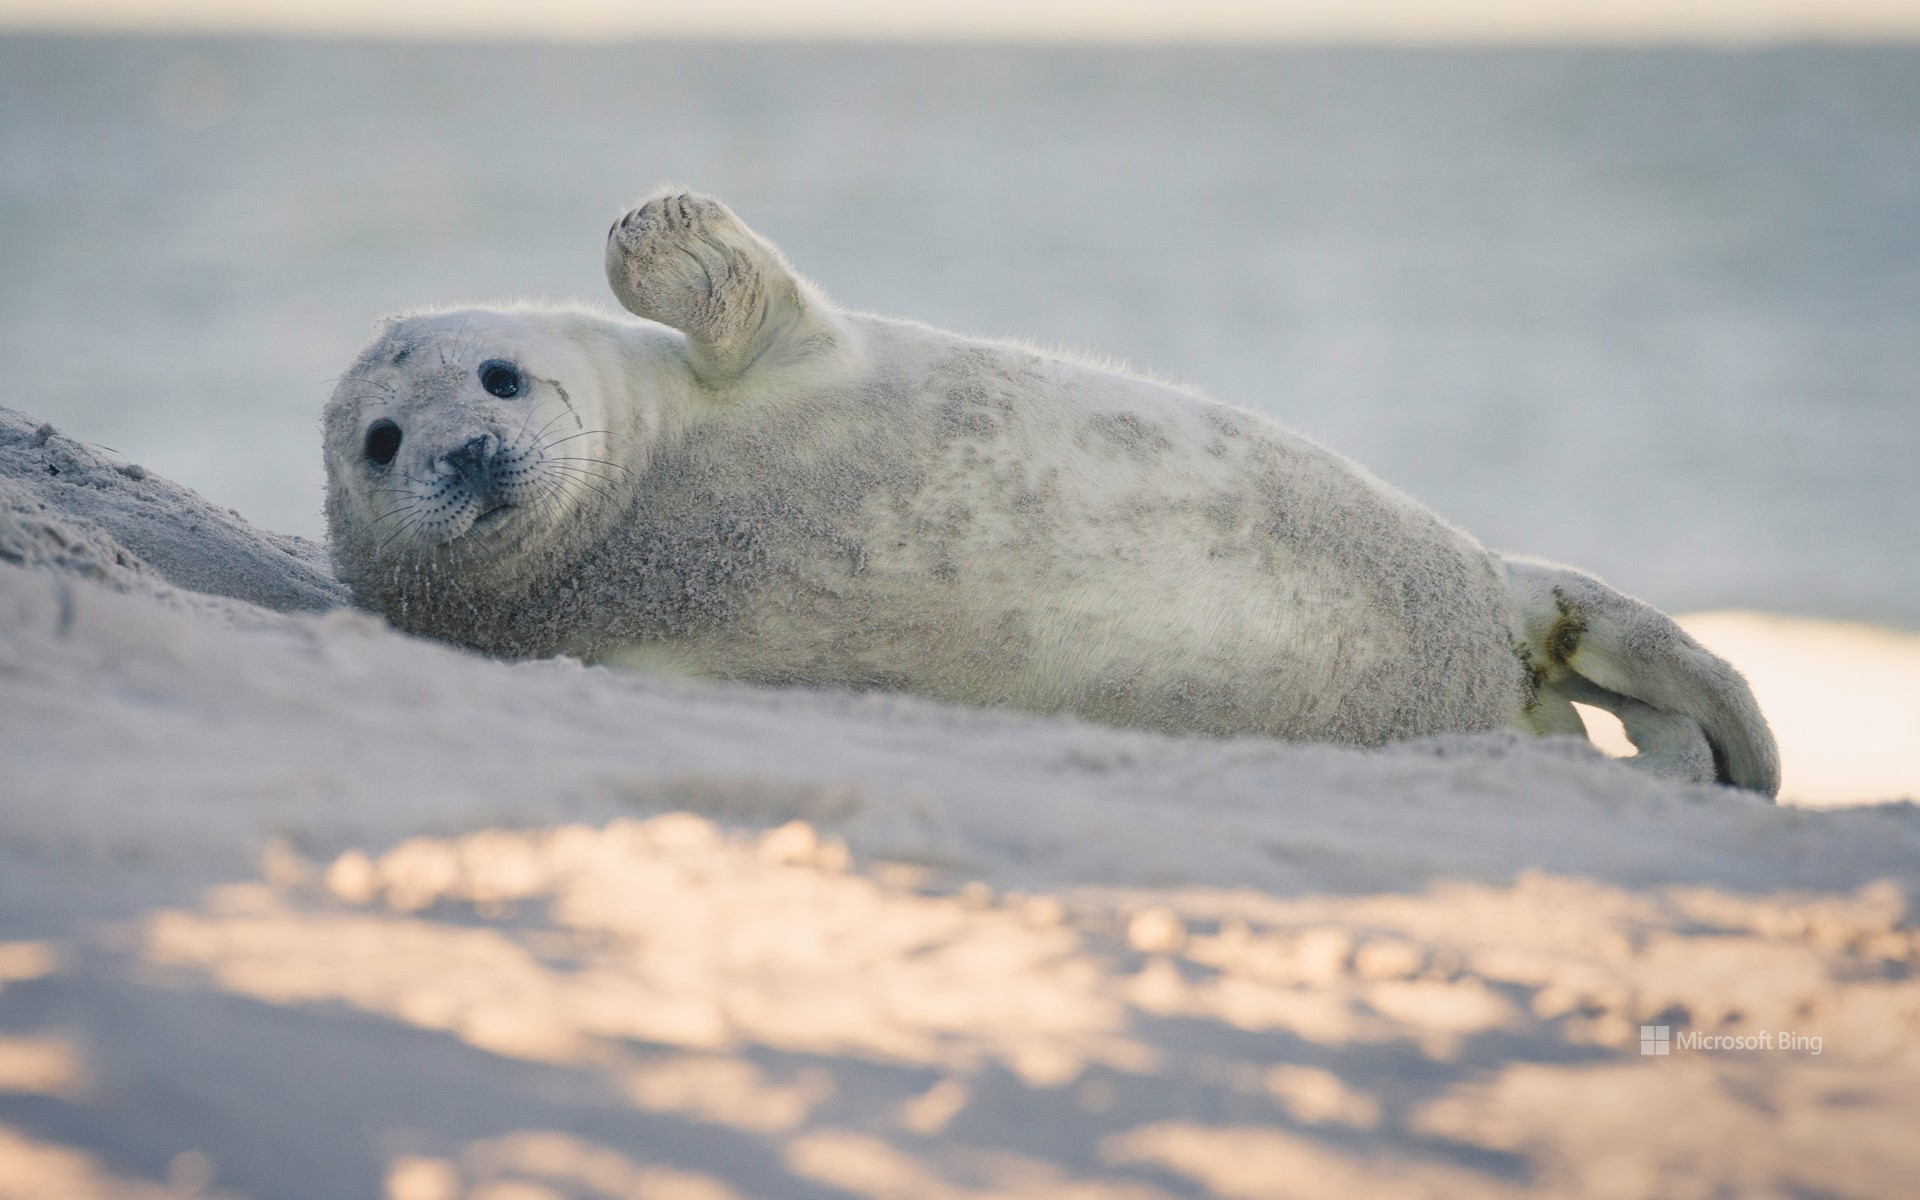 Young gray seal on the beach of the island of Dune, Heligoland, Schleswig-Holstein